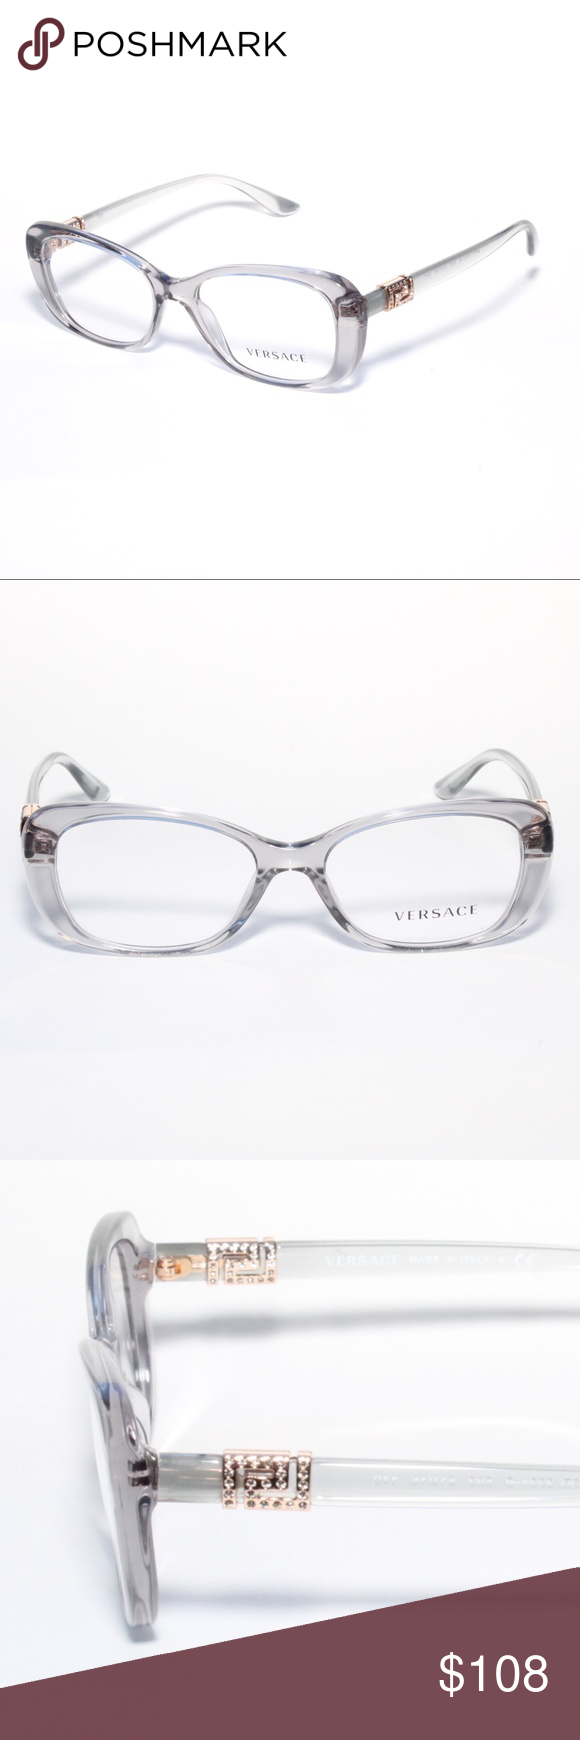 21afc8667153 Versace Eyeglasses 3234-B 593 51 16 Transparent Gr Brand new 100% authentic Versace  Eyeglasses 3234-B 593 51 16 Transparent Gray Comes with Generic Case